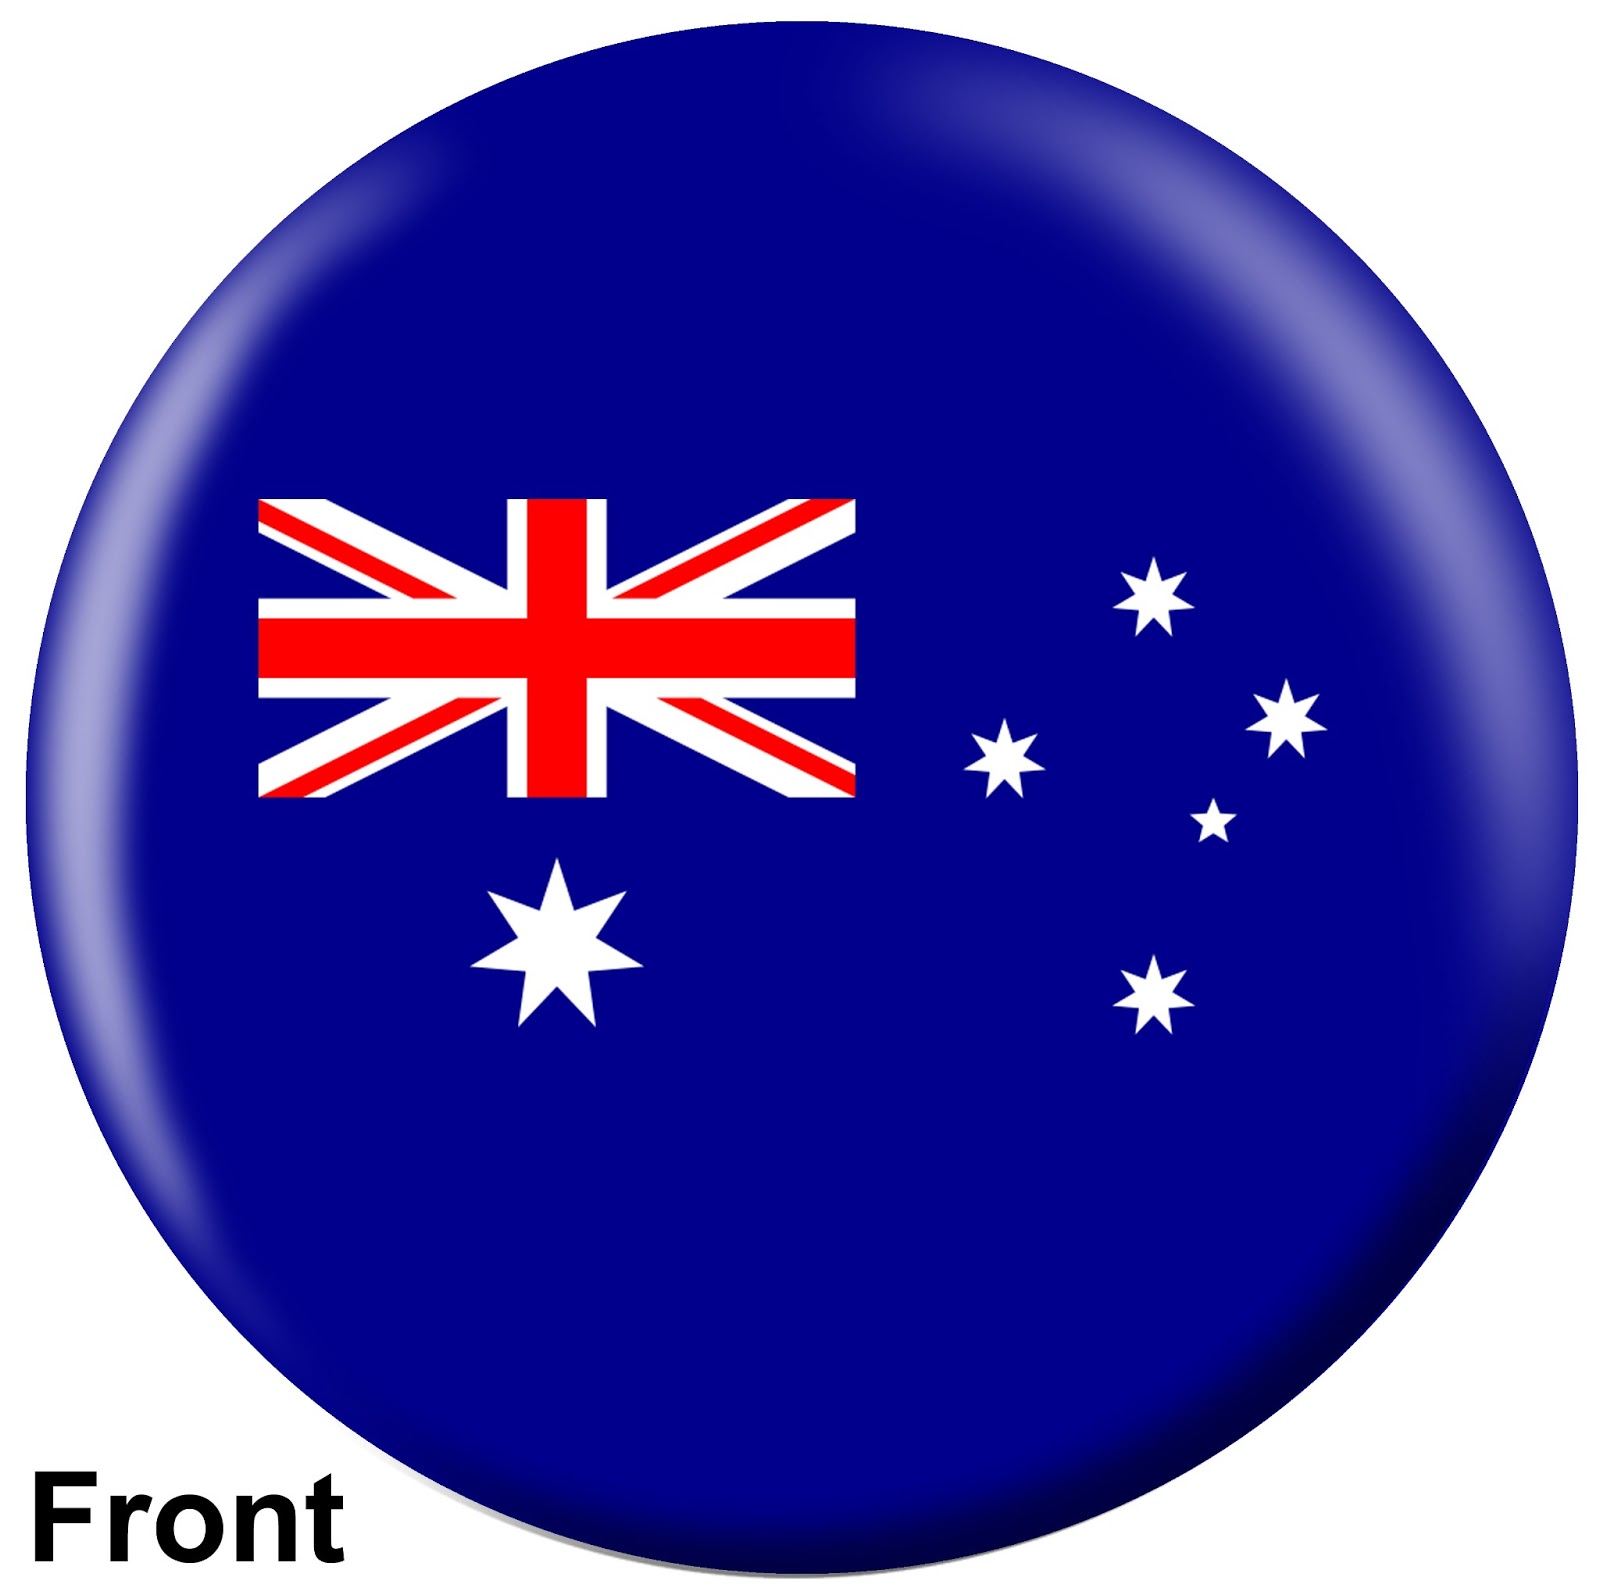 Australian Flag Hd Images Free Download